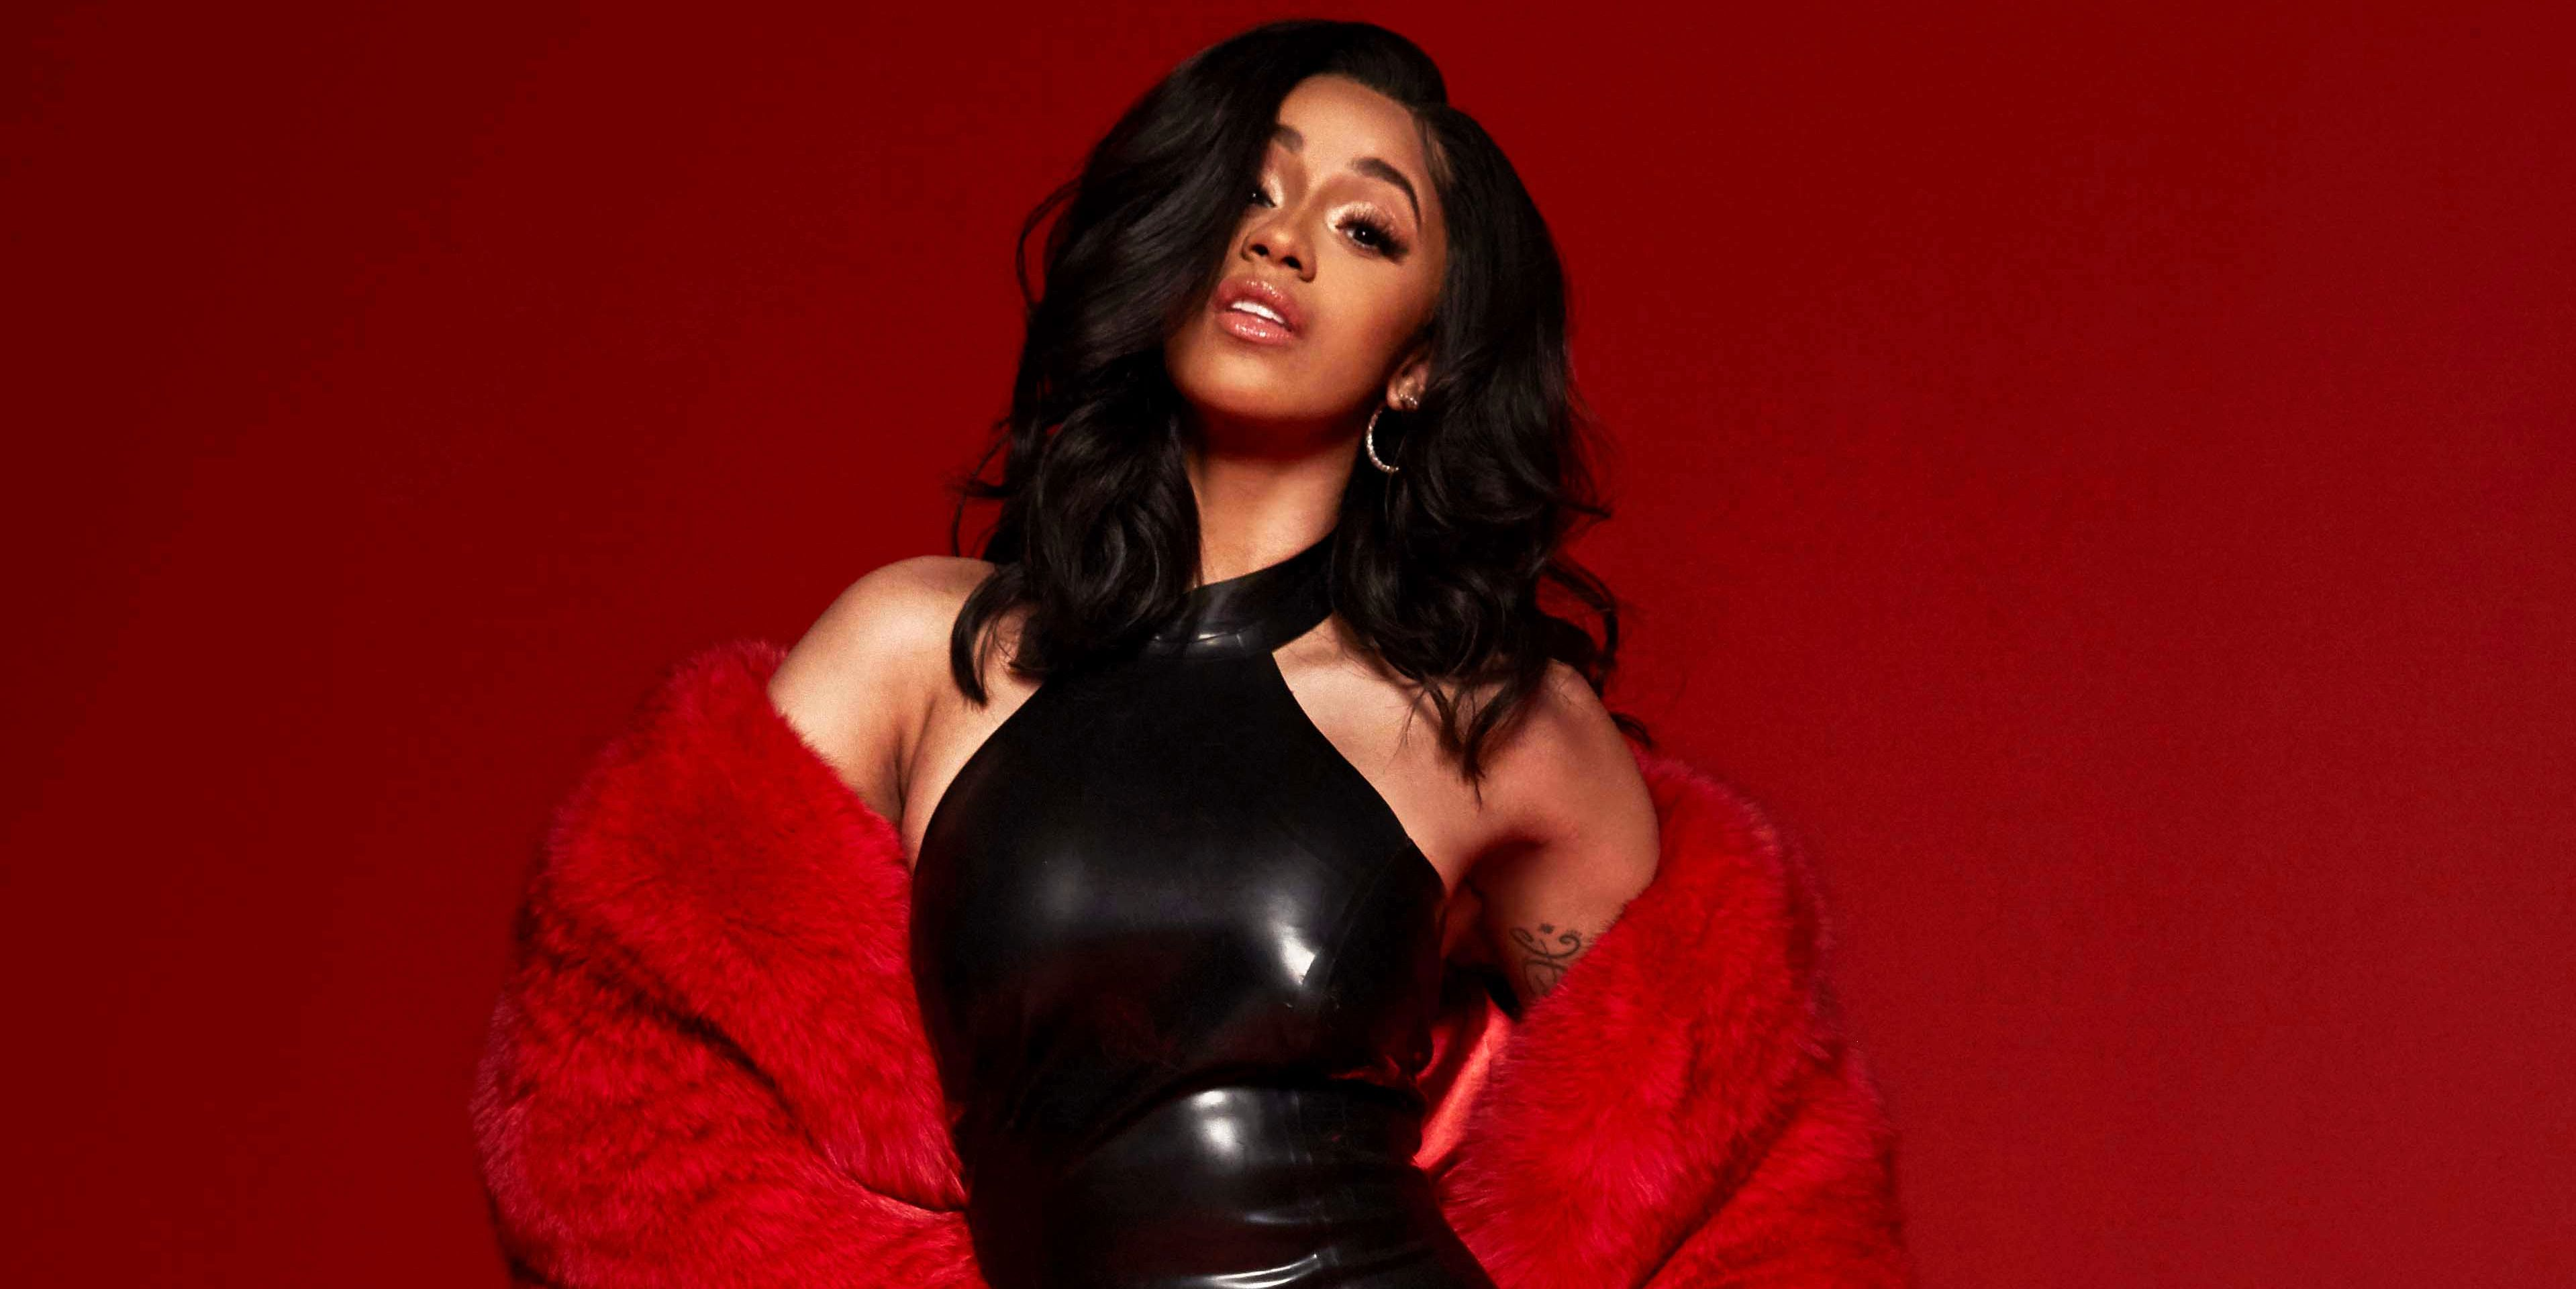 Cardi B Press New Music Conversations About Her